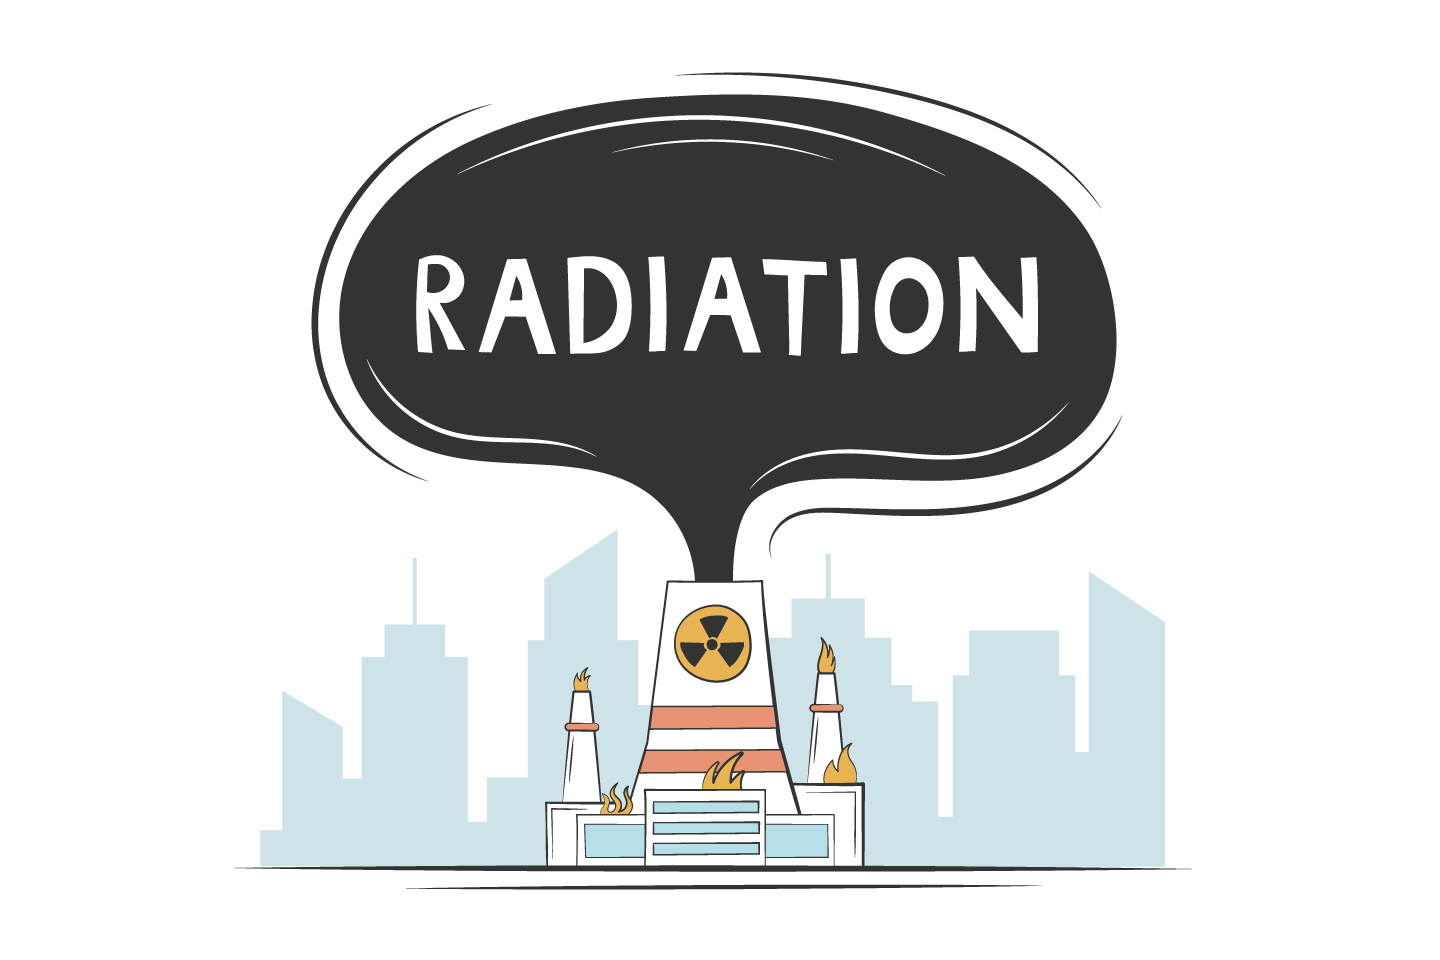 Accident at a Nuclear Power Plant with Radiation Emission Concept